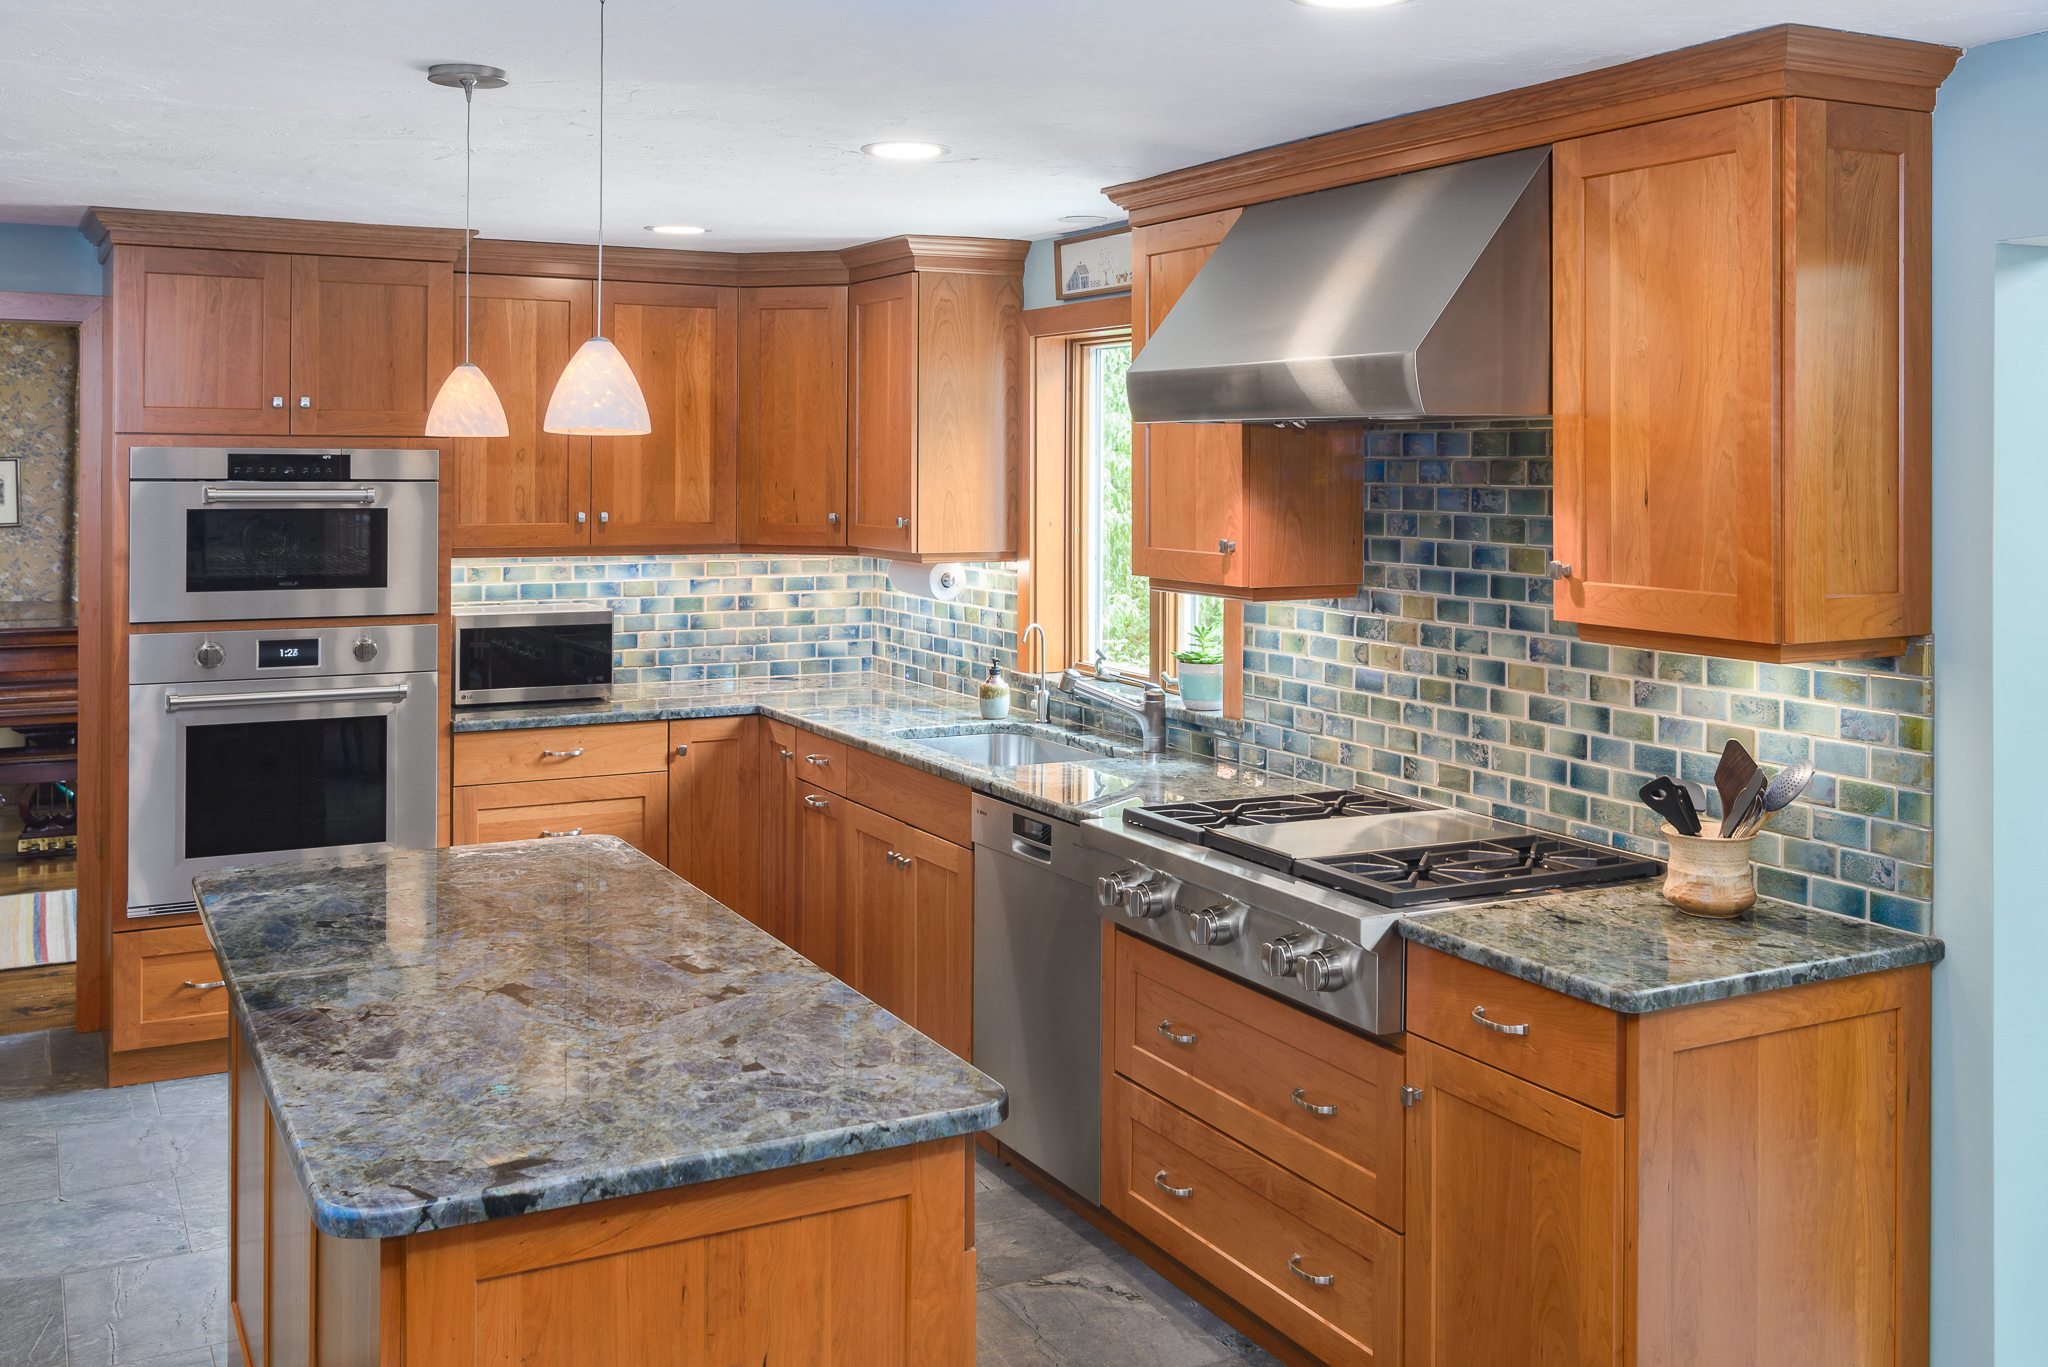 Ocean Inspired Kitchen Remodel In Bolton, MA